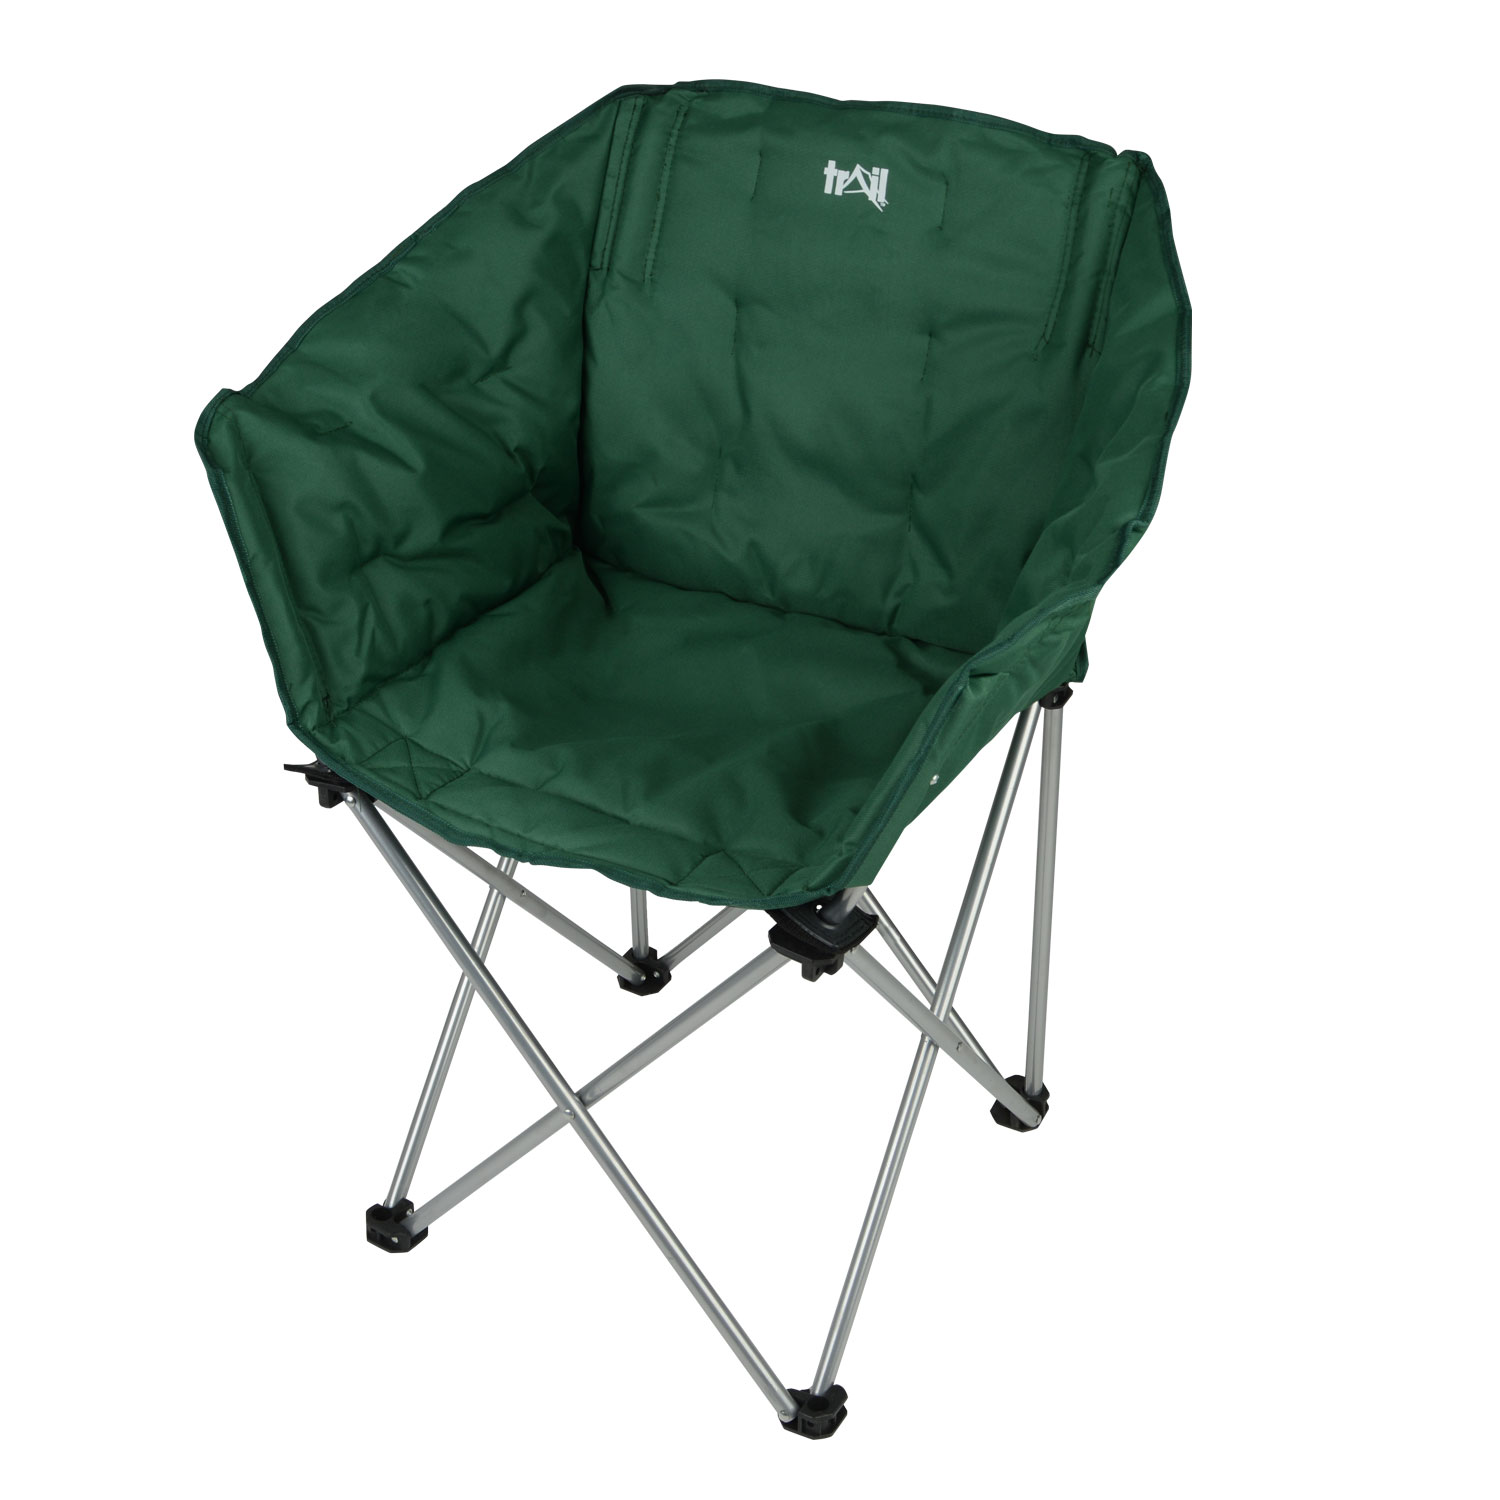 folding camping chair portable padded tub seat outdoor fishing festival by trail ebay. Black Bedroom Furniture Sets. Home Design Ideas